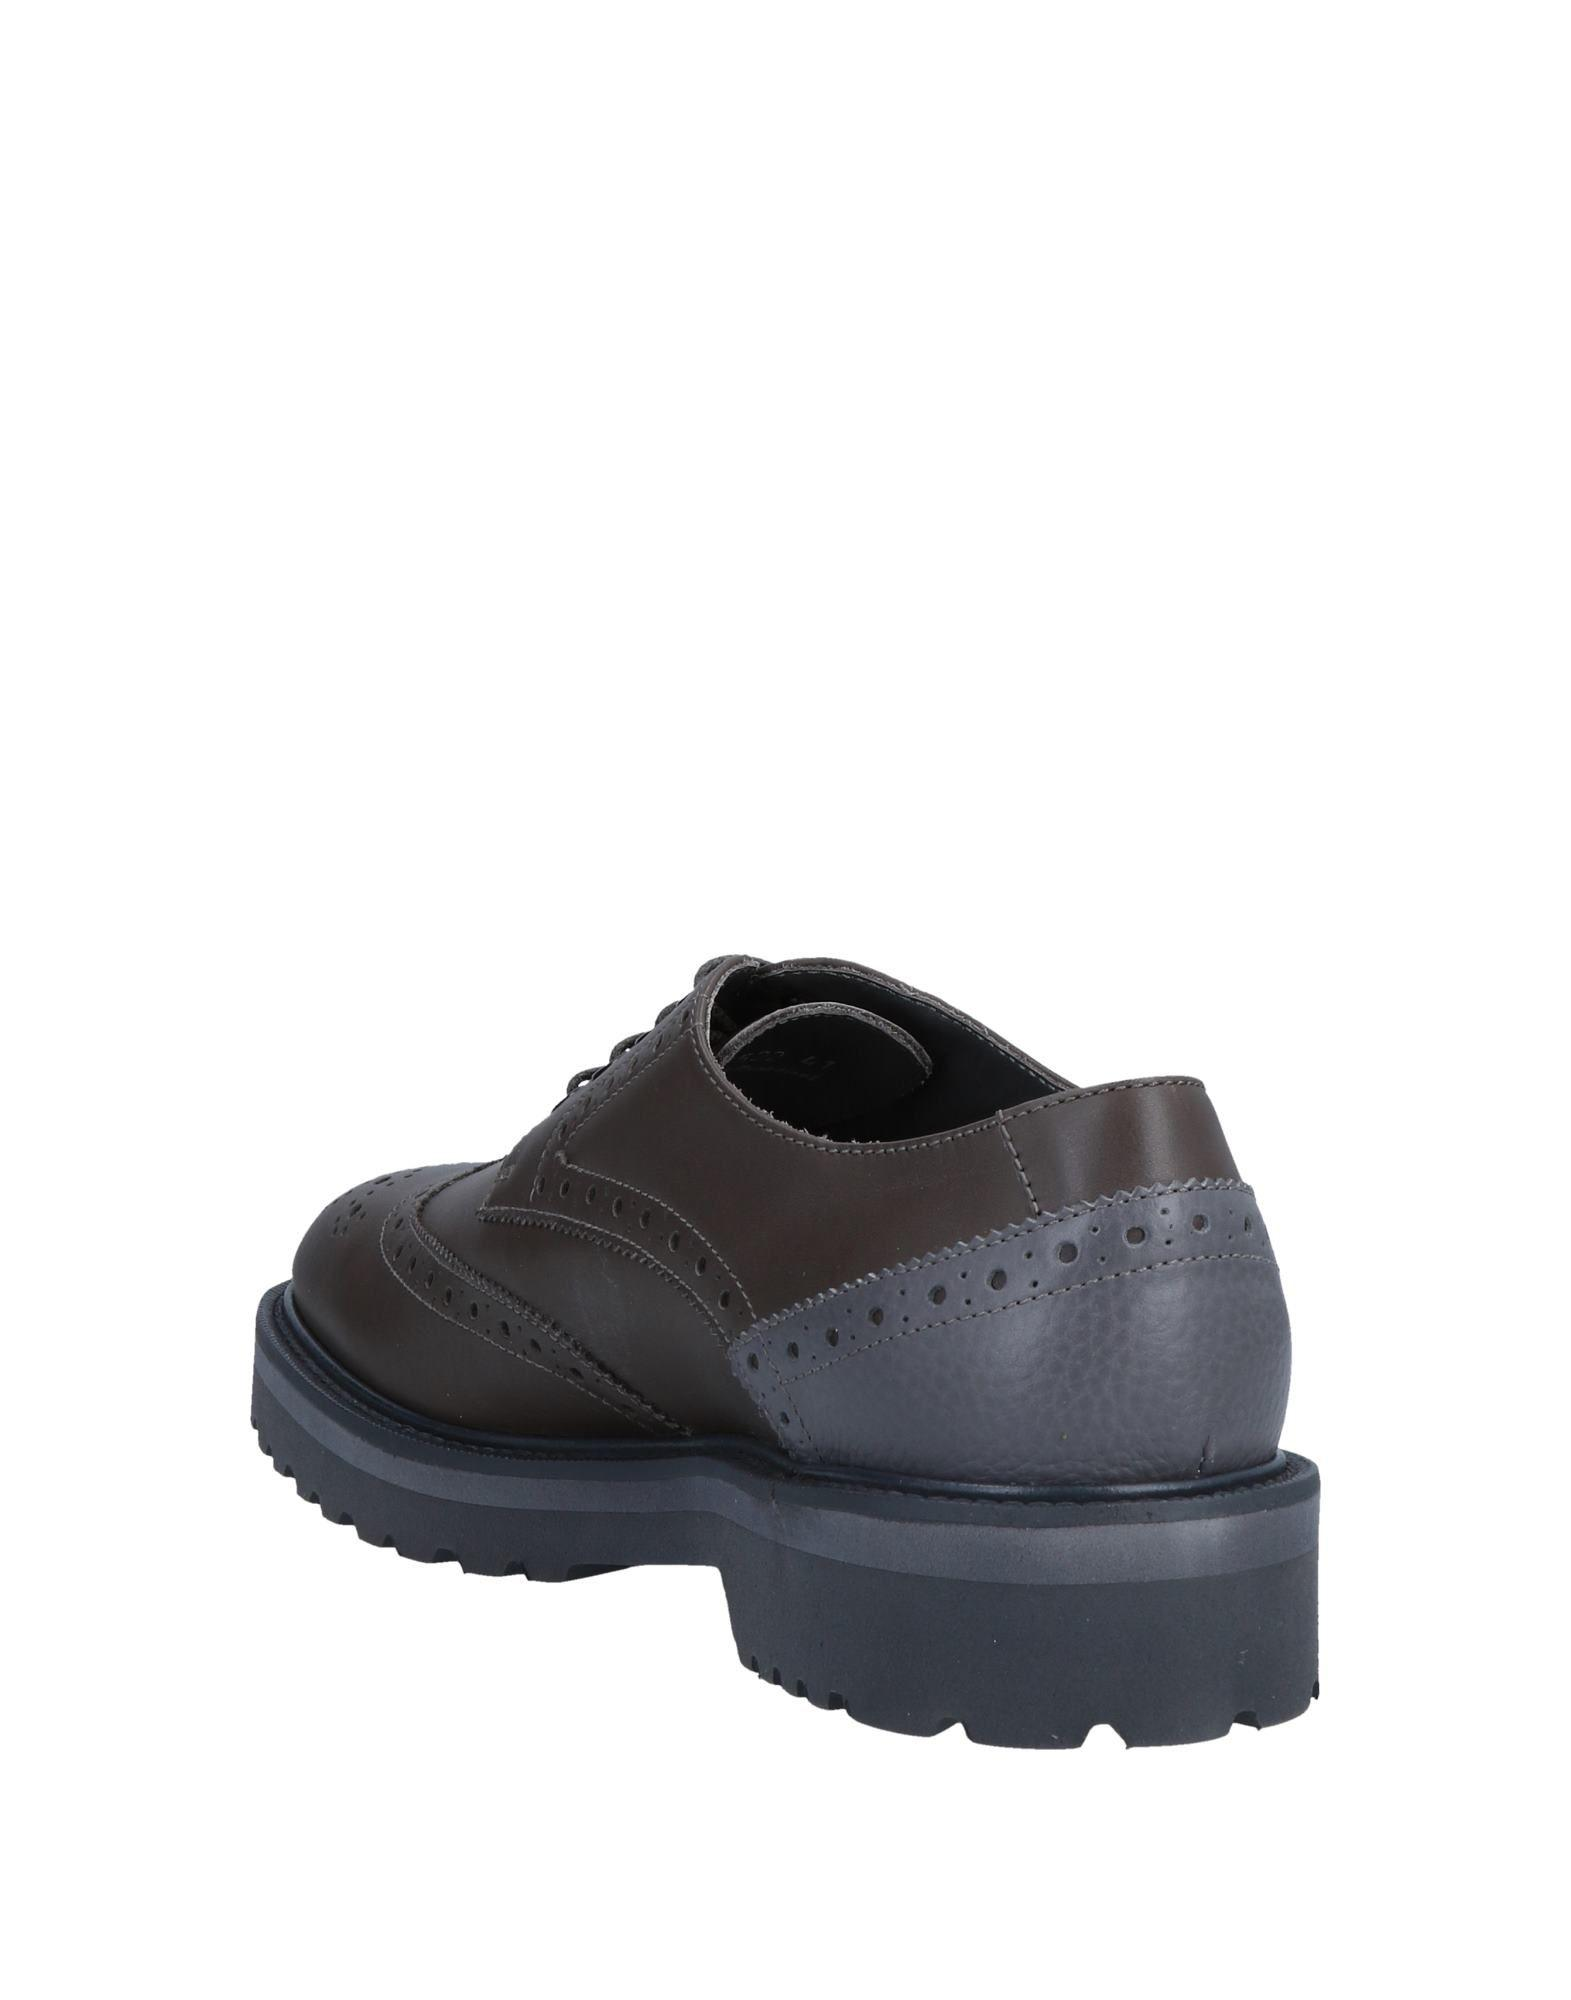 Gray Gray Lyst Lyst Lyst up Guardiani Alberto in Men for Lace Shoe YqYgwrB